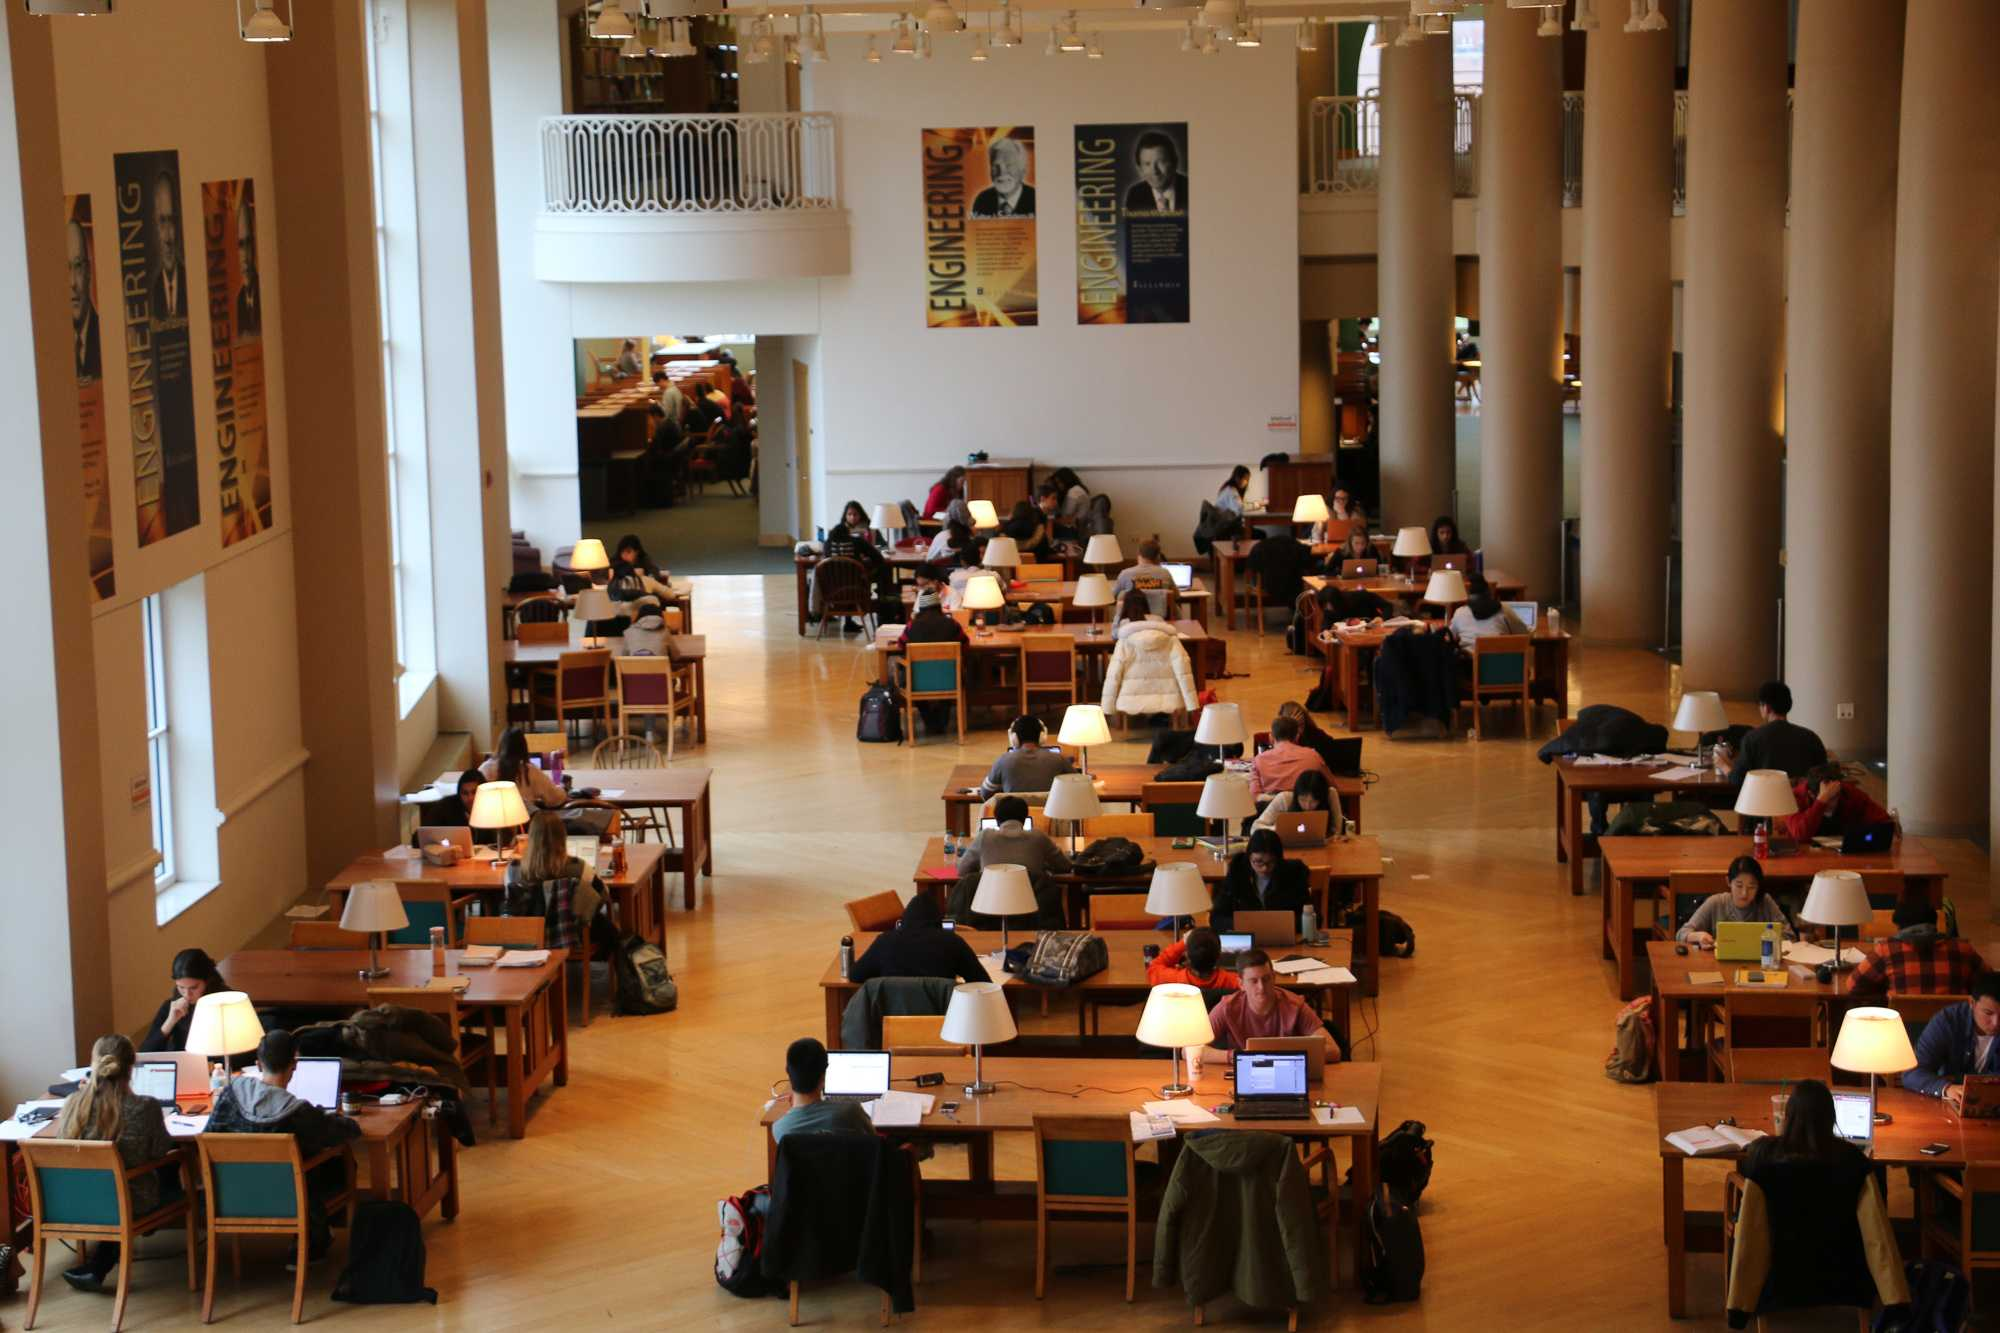 Students studying in Grainger Library for finals on Dec. 6, 2016.